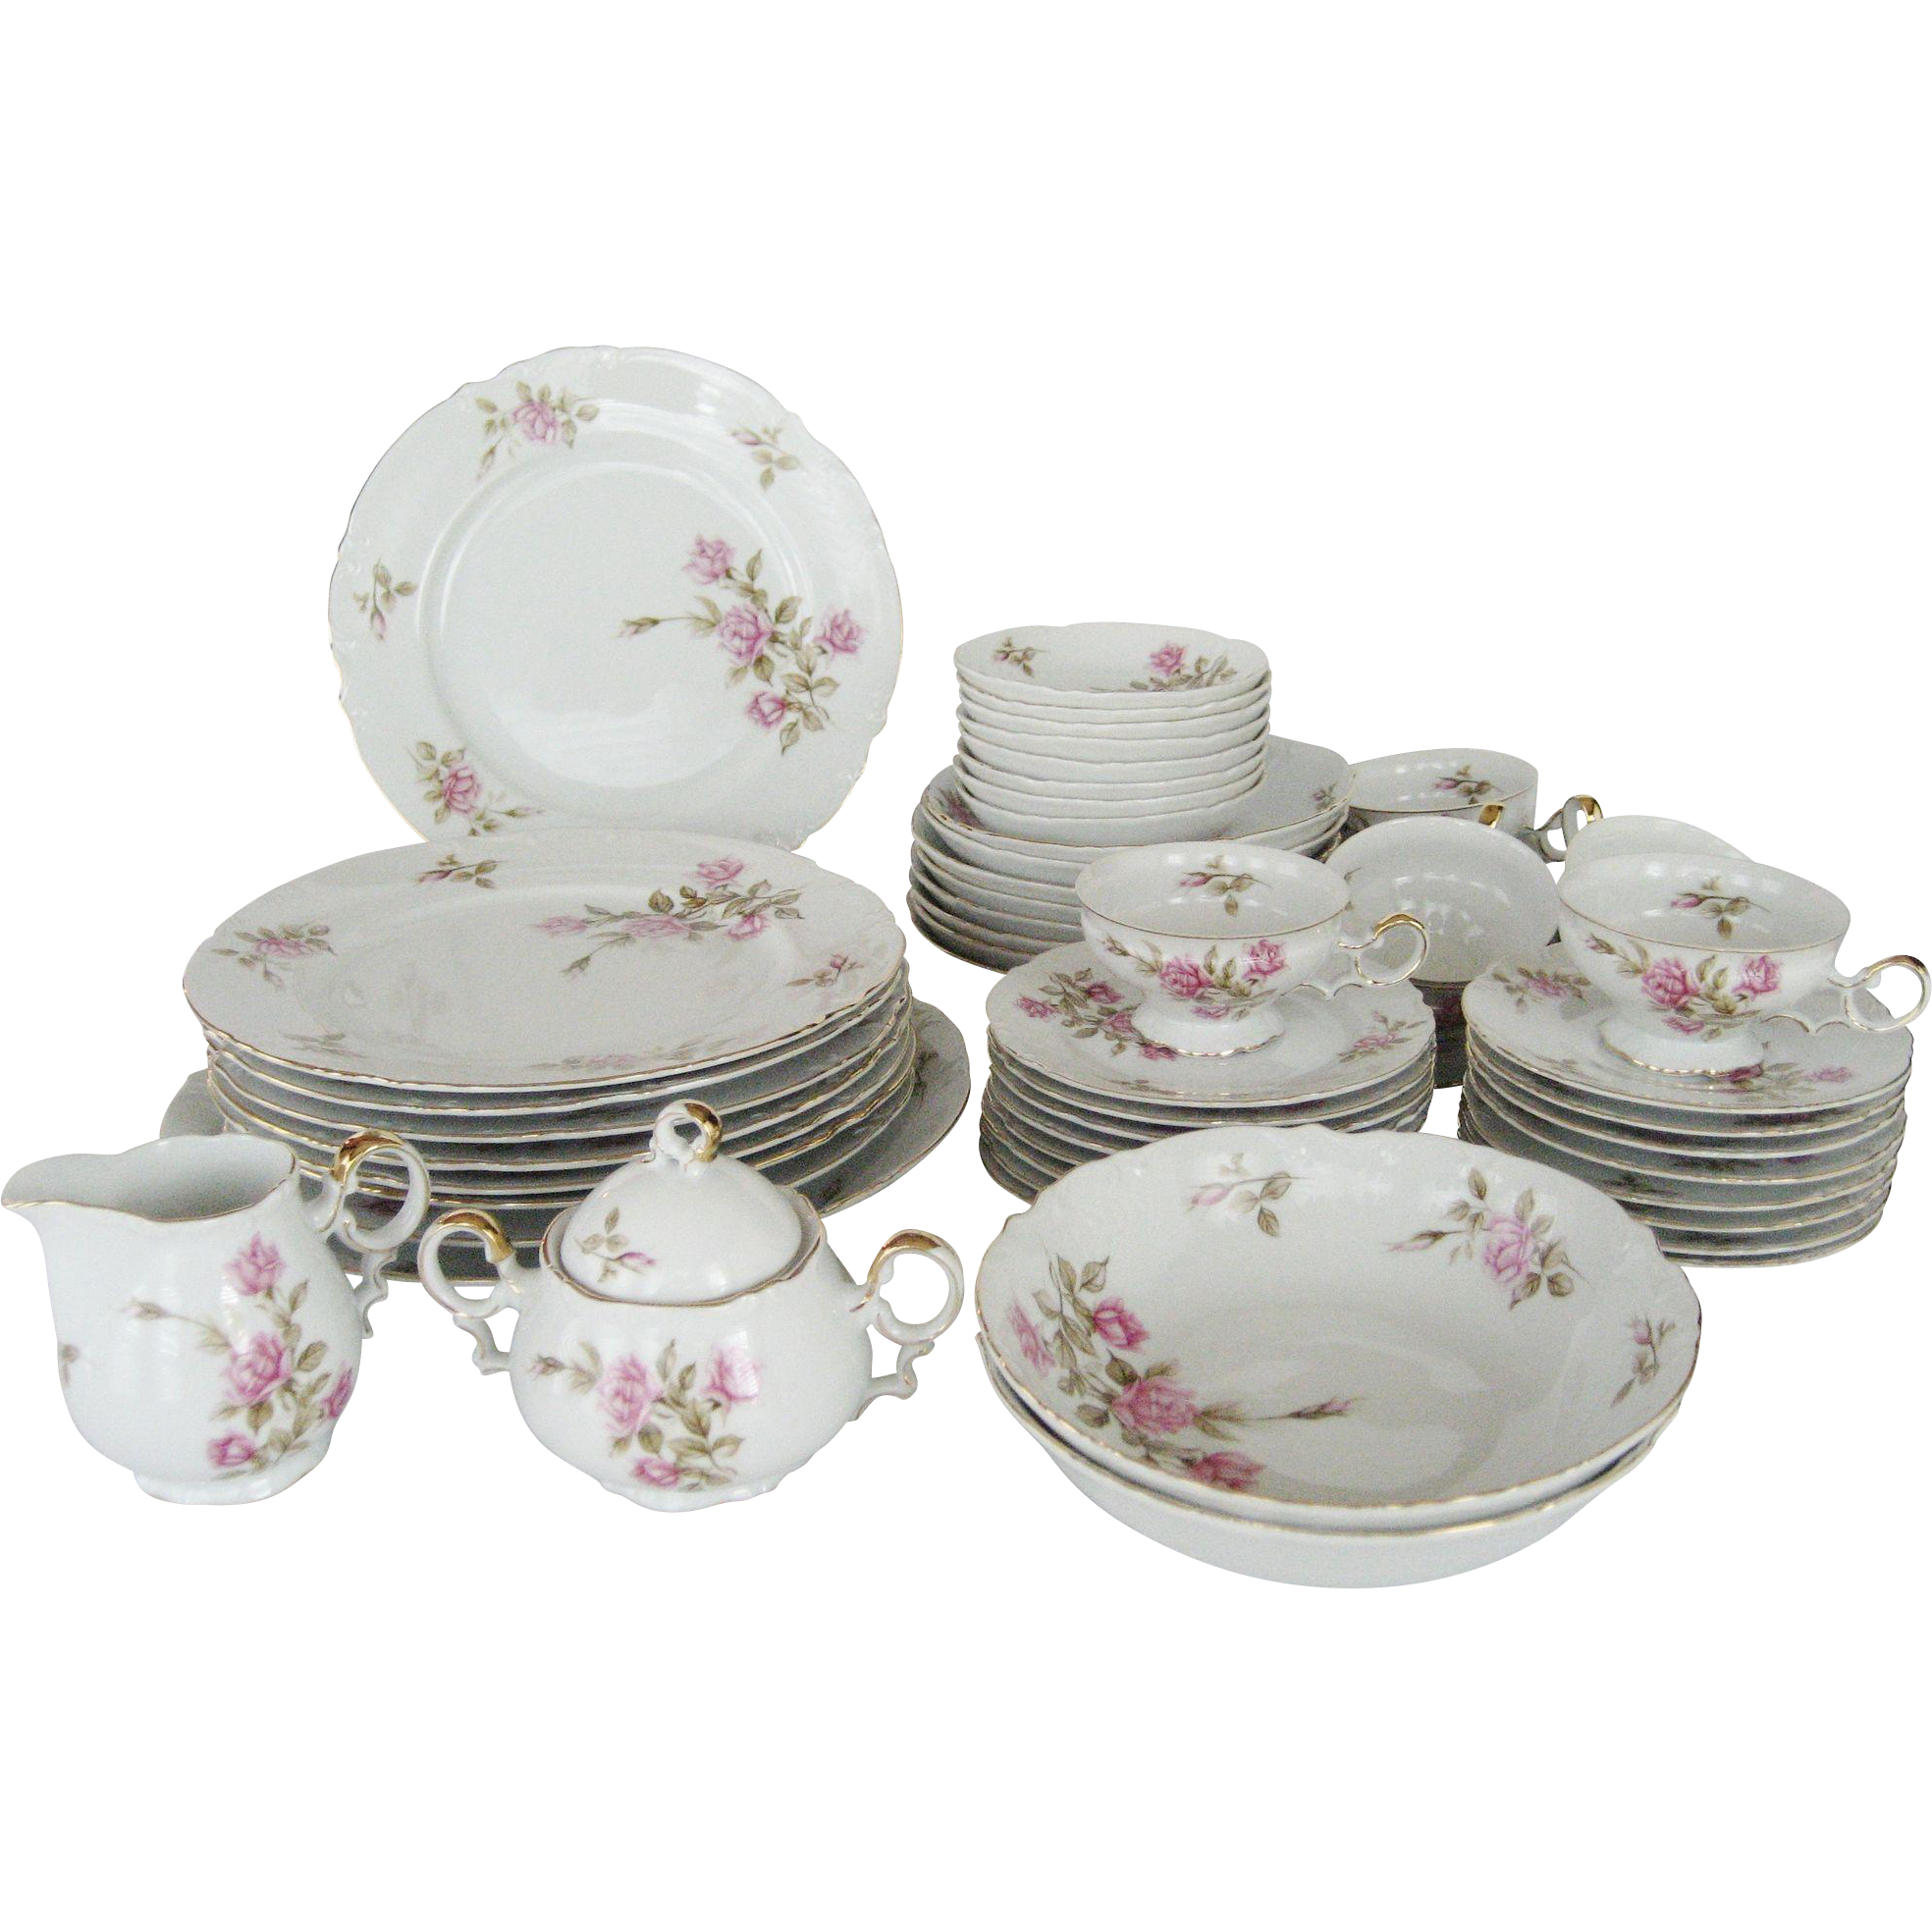 54 Pc. Set Mikasa China Dinnerware - Rosetta